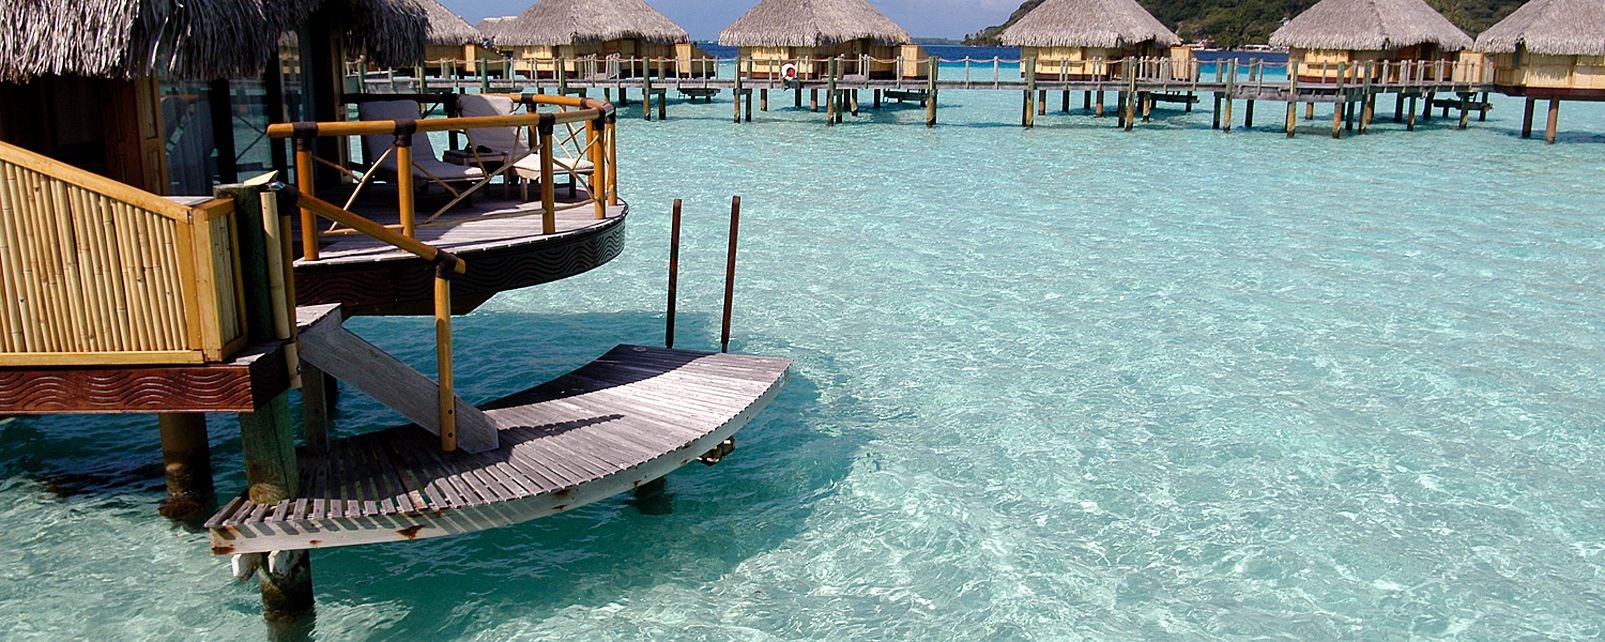 Hotel Bora Bora Pearl Beach Resort and Spa